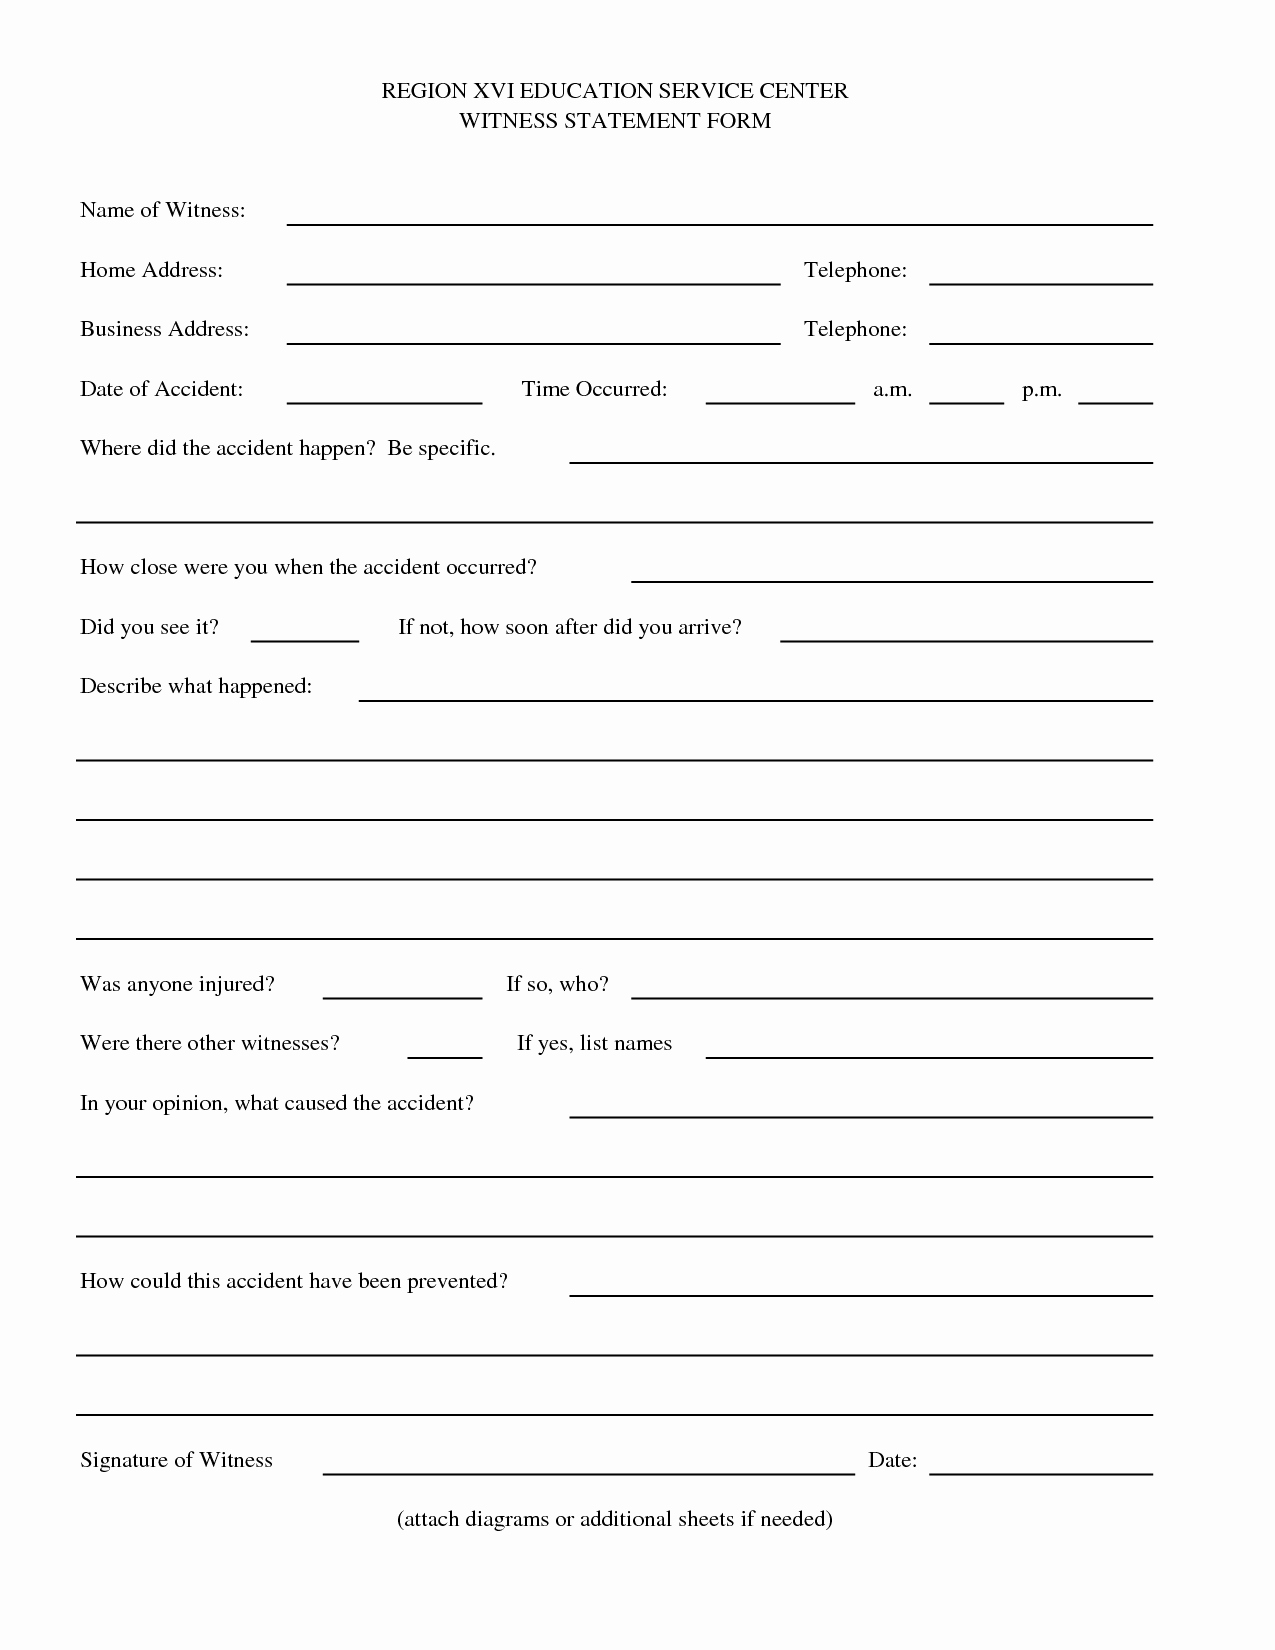 Witness Statement form Template Best Of Best S Of Witness Signature Statement Accident